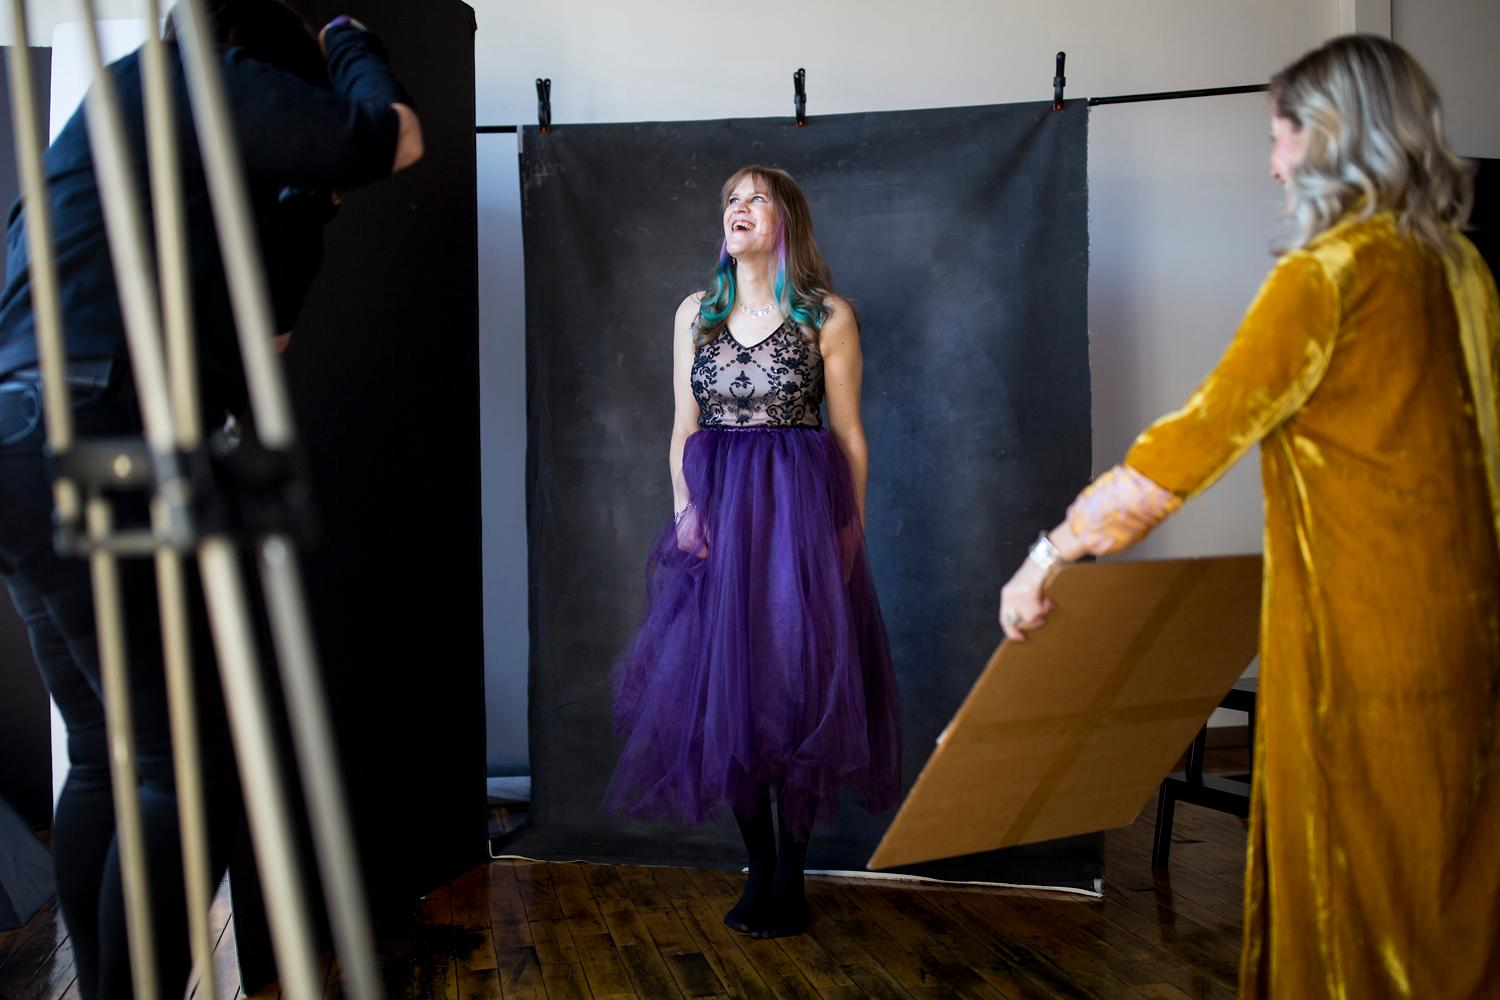 Erica Sciarretta of Sorella Photos photographs Monika Hawkinson for her first professional photoshoot in SODO. (Sy Bean / Seattle Refined)